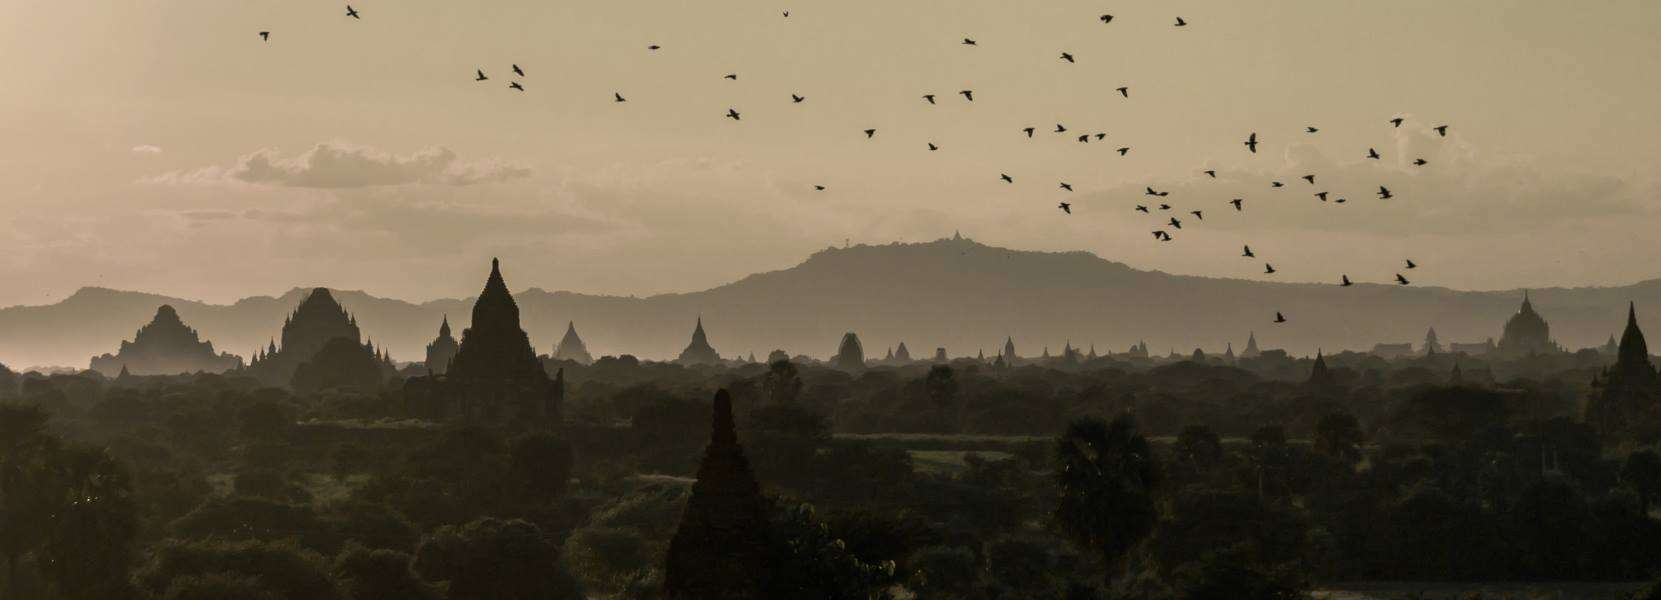 bagan myanmar birds